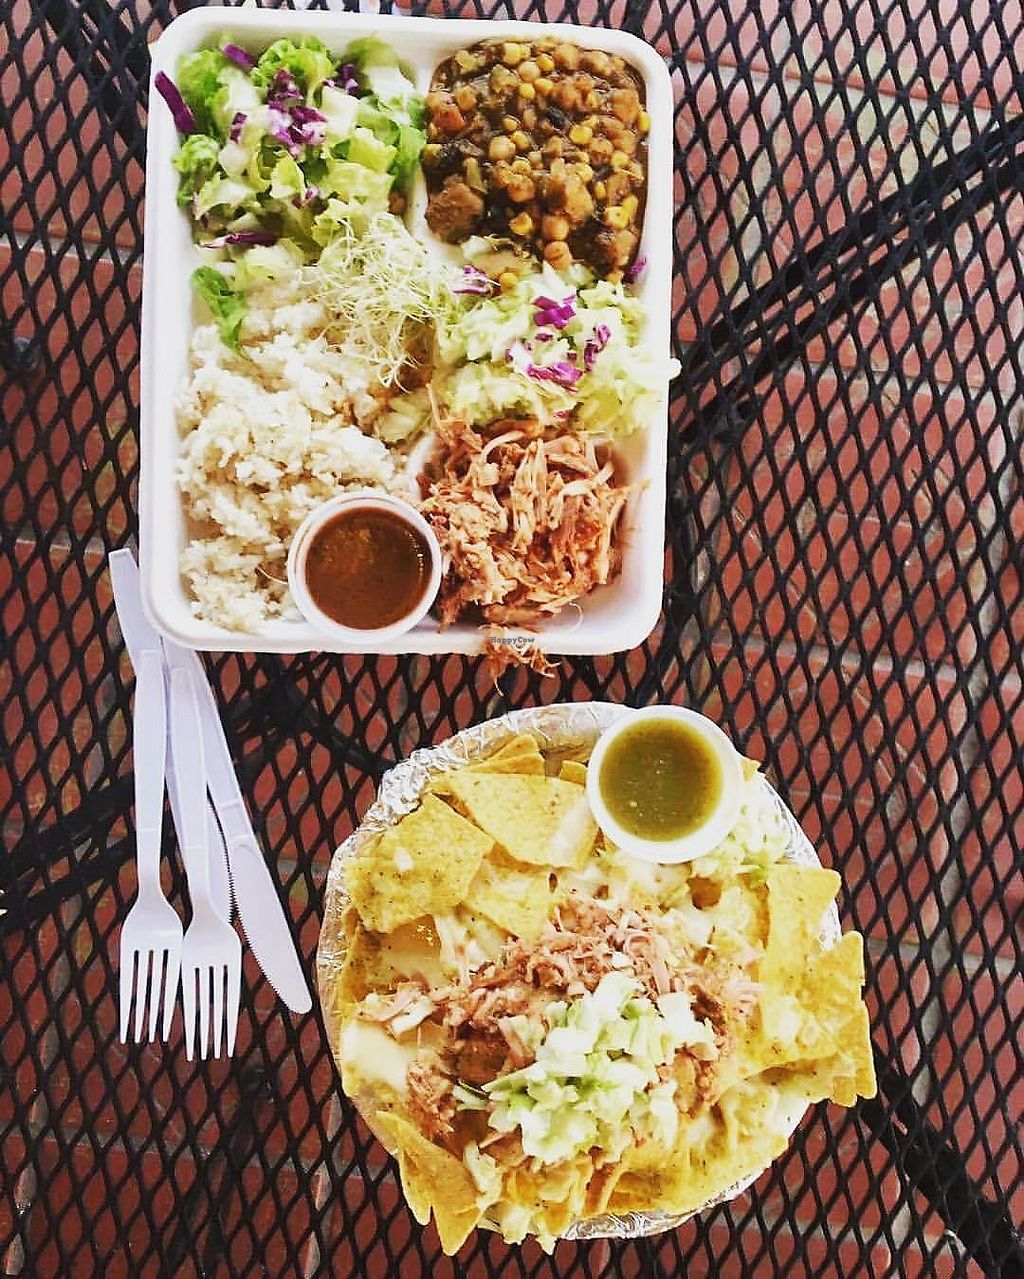 """Photo of Loko Wraps  by <a href=""""/members/profile/jlideik%40gmail.com"""">jlideik@gmail.com</a> <br/>Hot plate with coconut rice, pineapple coleslaw, jackfruit bbq, salad greens and hot lava sauce (sweet chili).  <br/> July 3, 2017  - <a href='/contact/abuse/image/94430/276429'>Report</a>"""